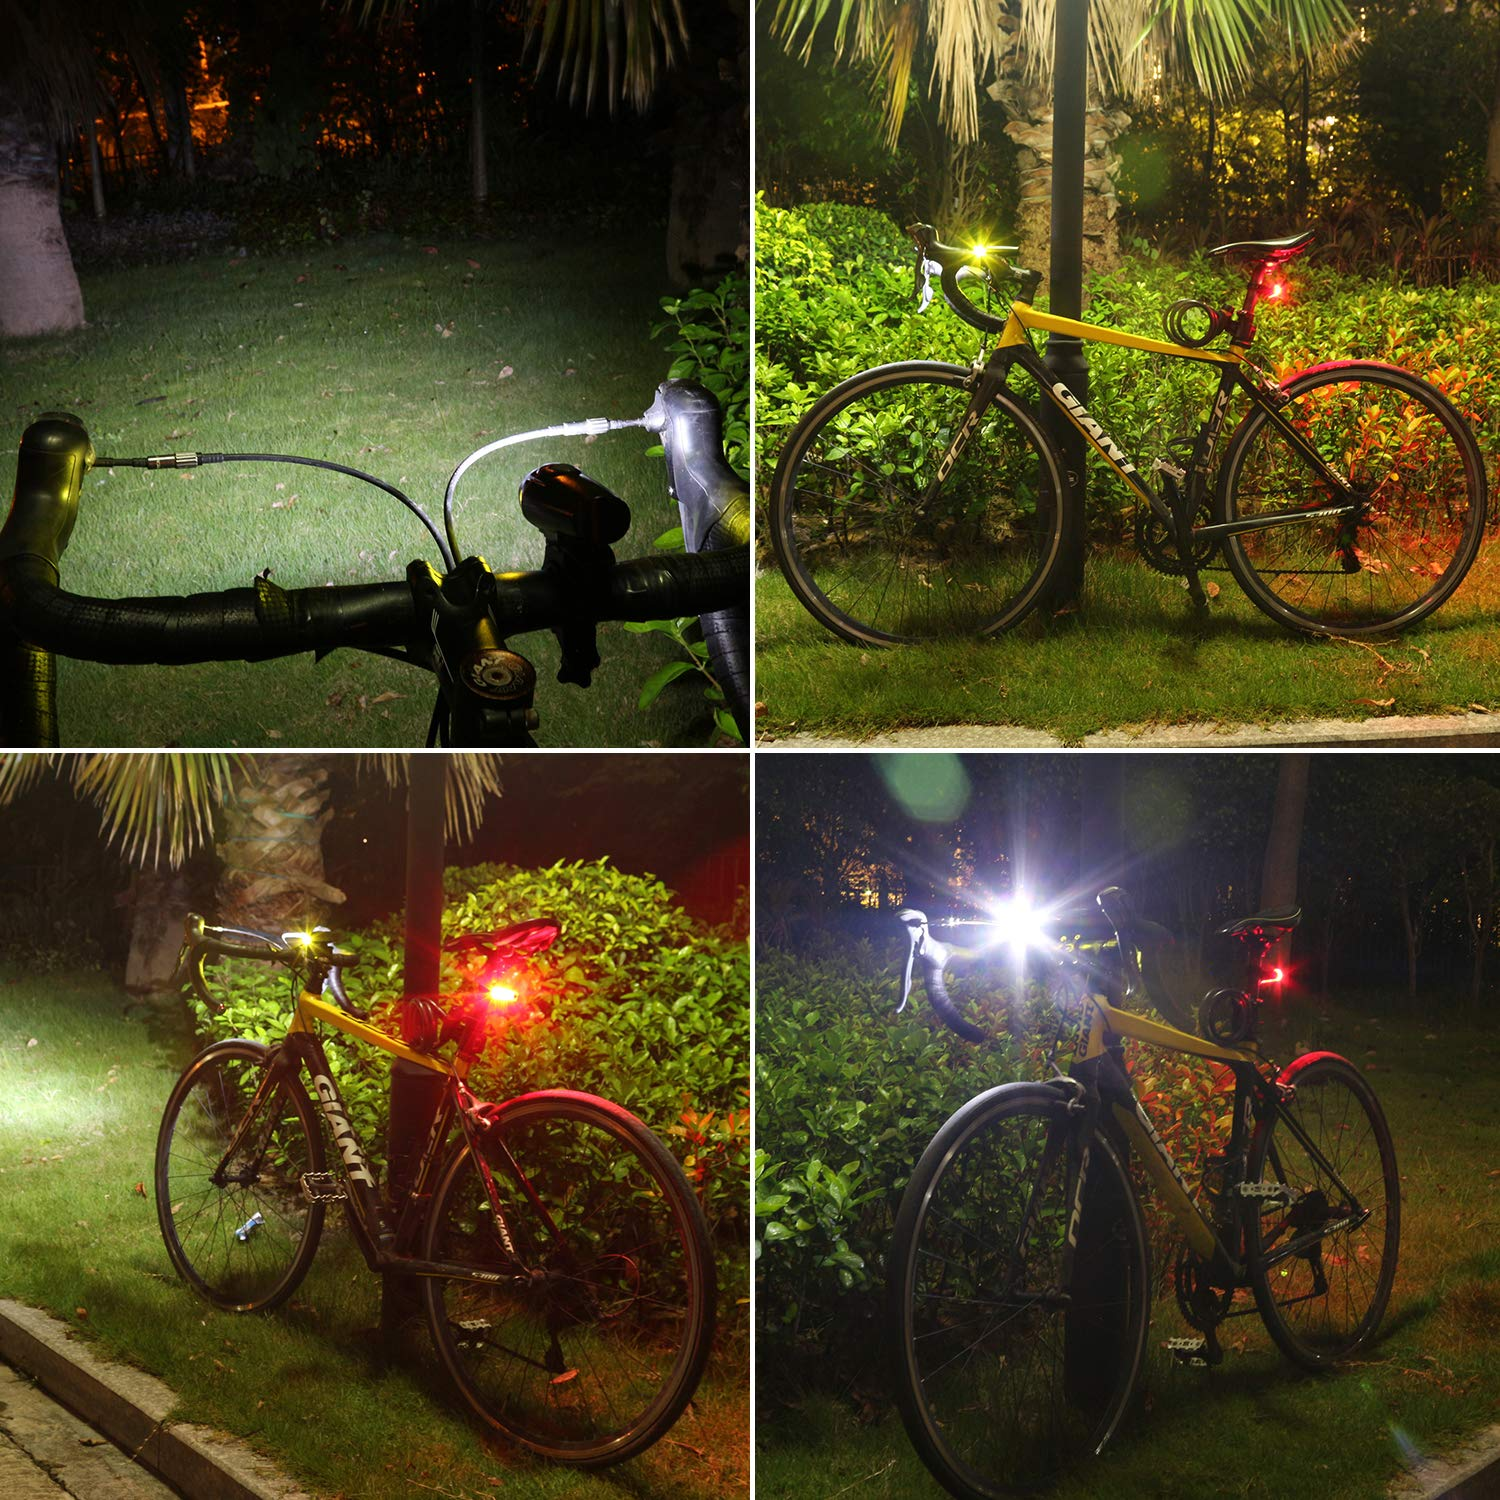 Rechargeable Taillight Included Uncharted Roads Gear URG Pro Ultra Bright USB Rechargeable Bike Light Set